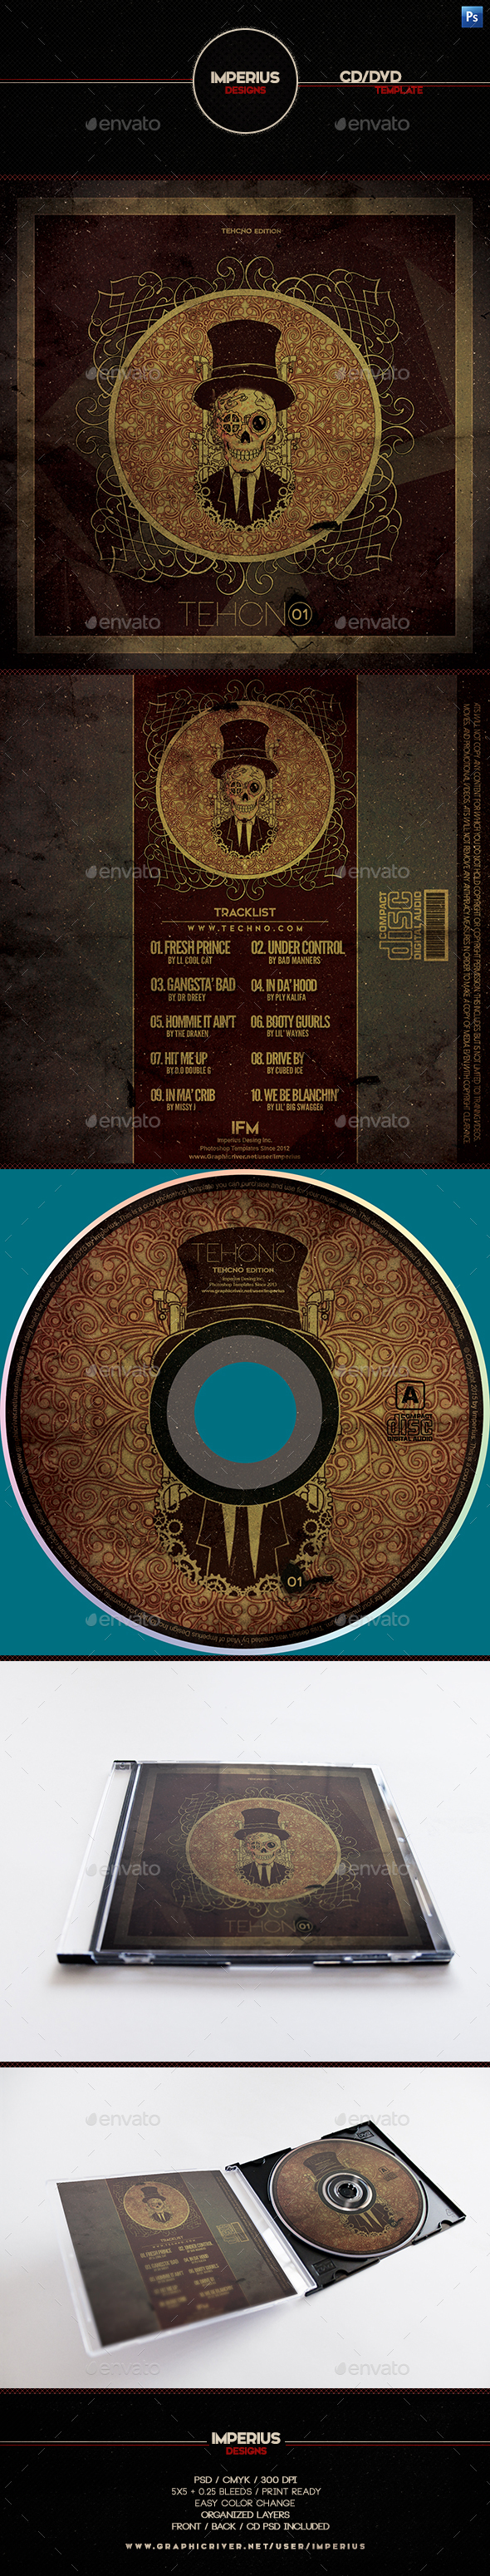 Techno CD/DVD Cover - CD & DVD Artwork Print Templates